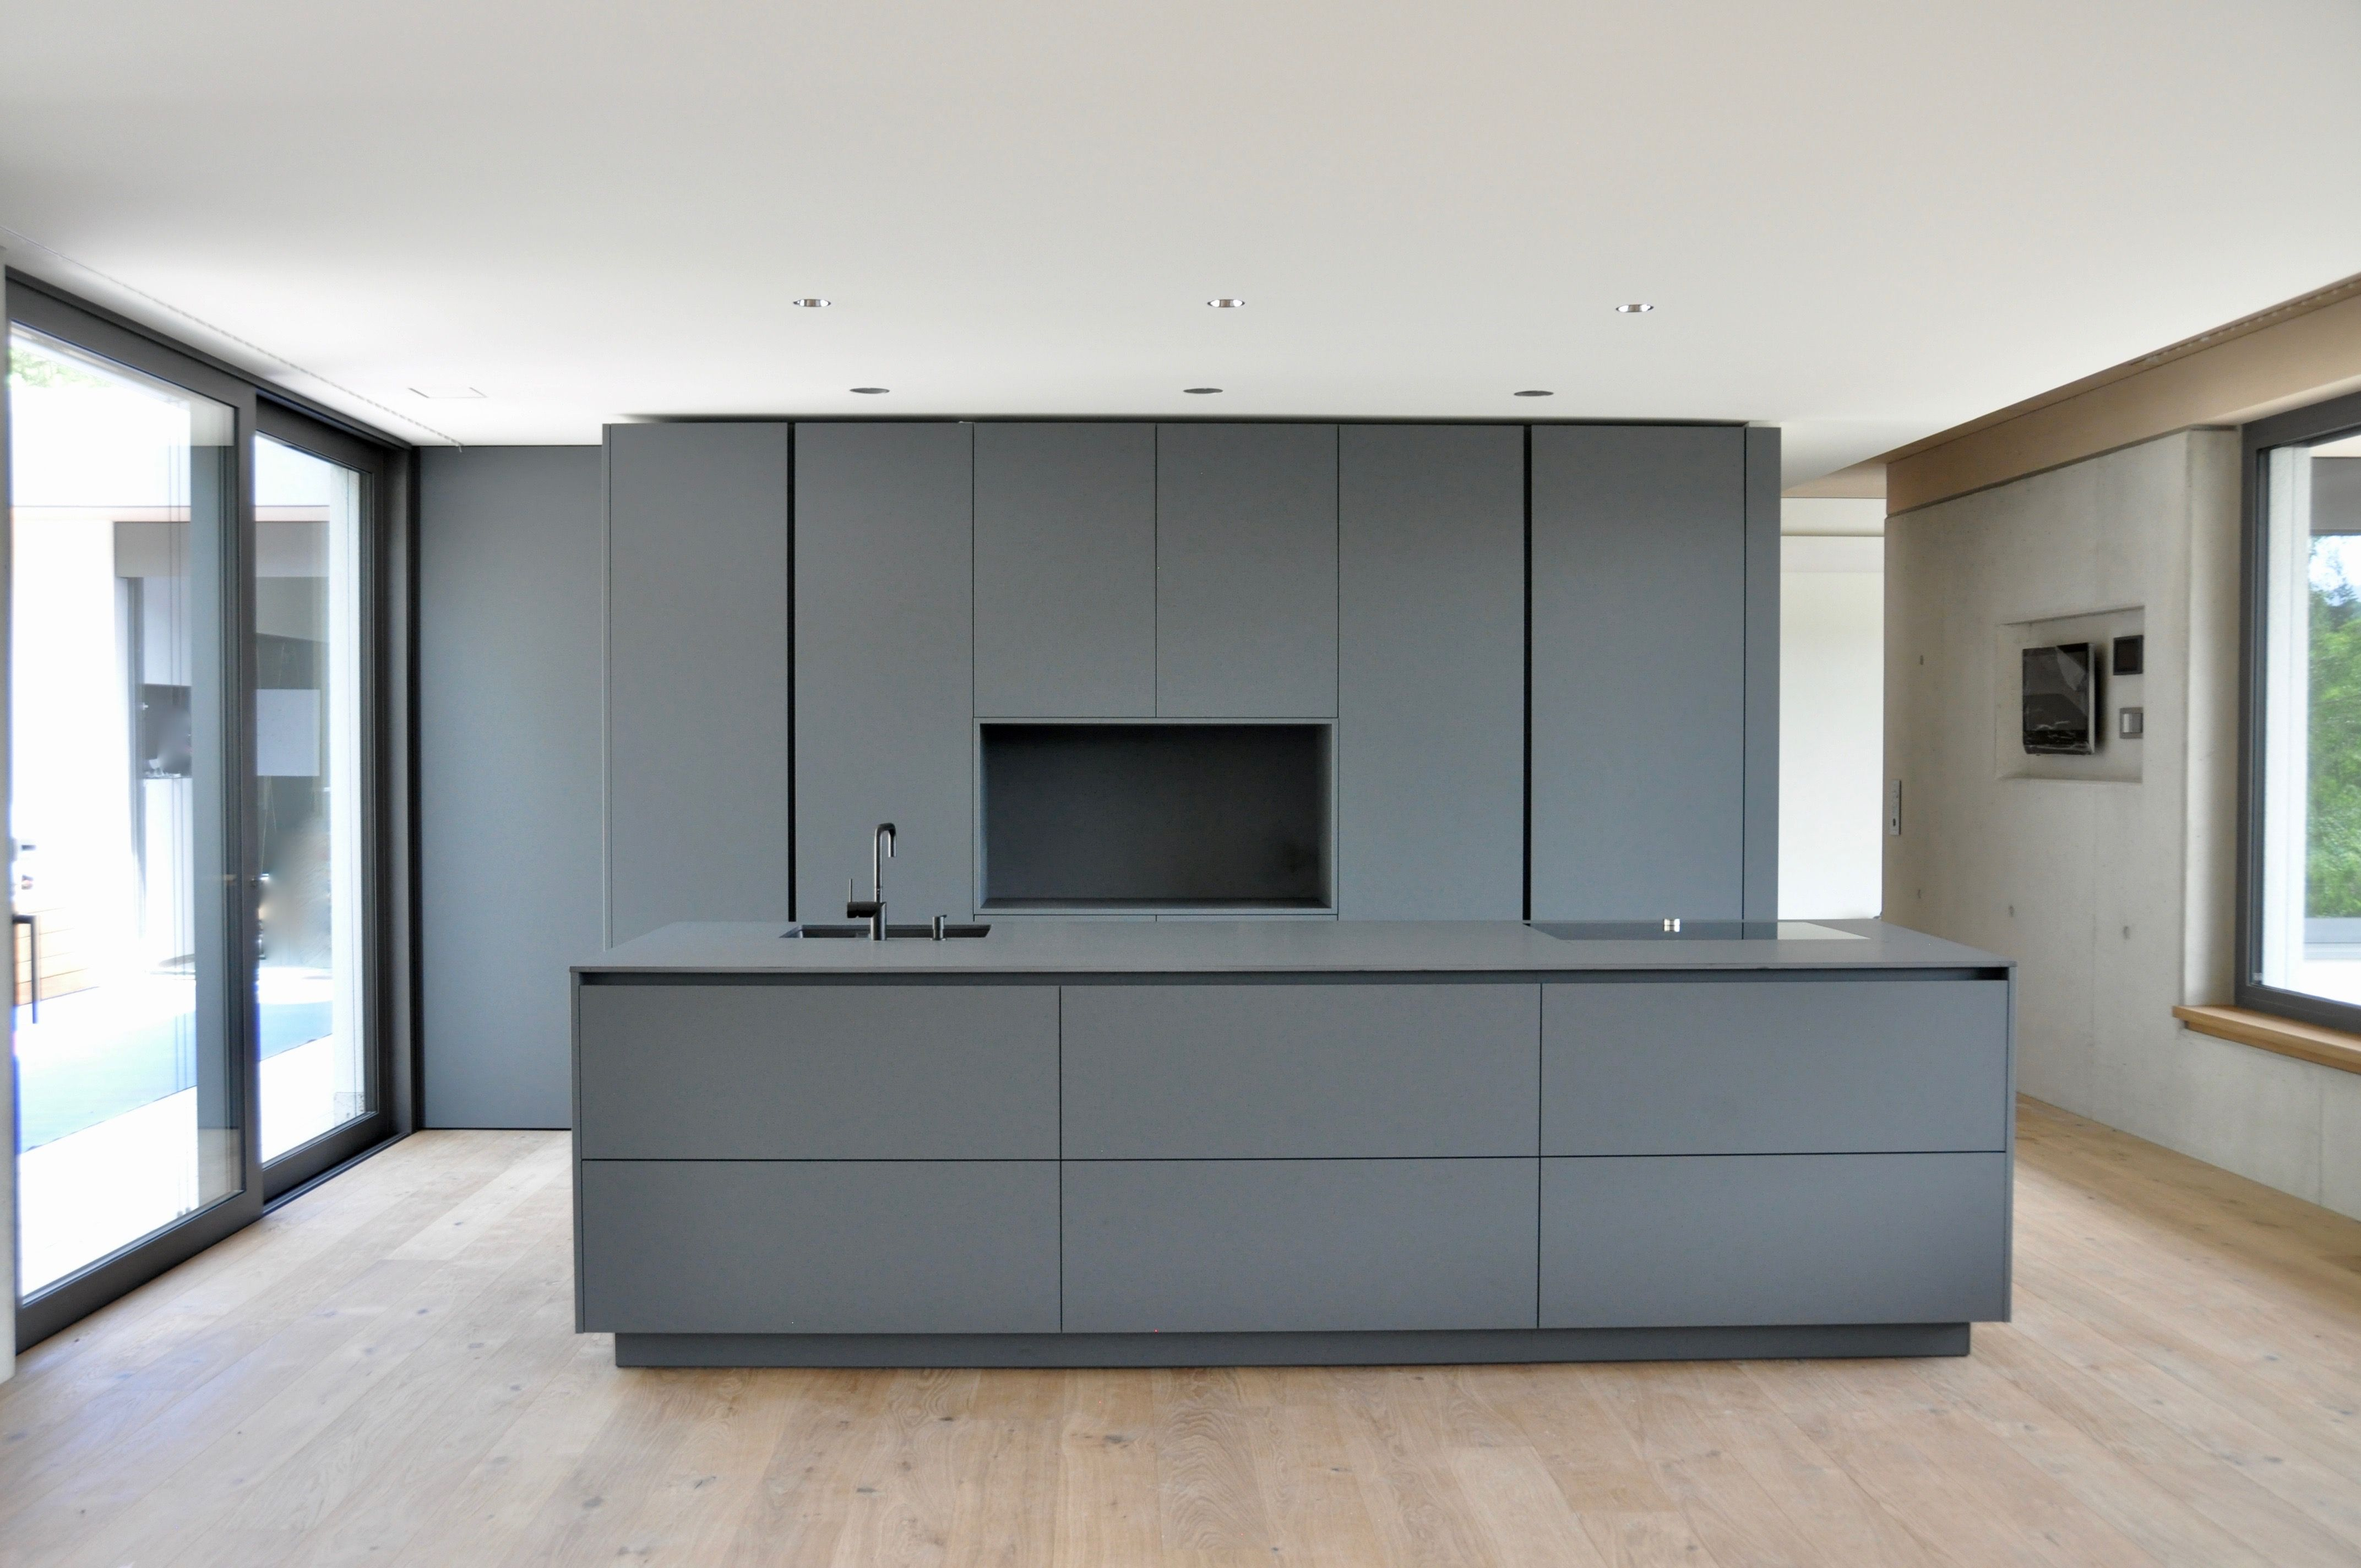 eggersmann fenix nano grigio by la cucina schweinfurt k chen pinterest k che die k che. Black Bedroom Furniture Sets. Home Design Ideas